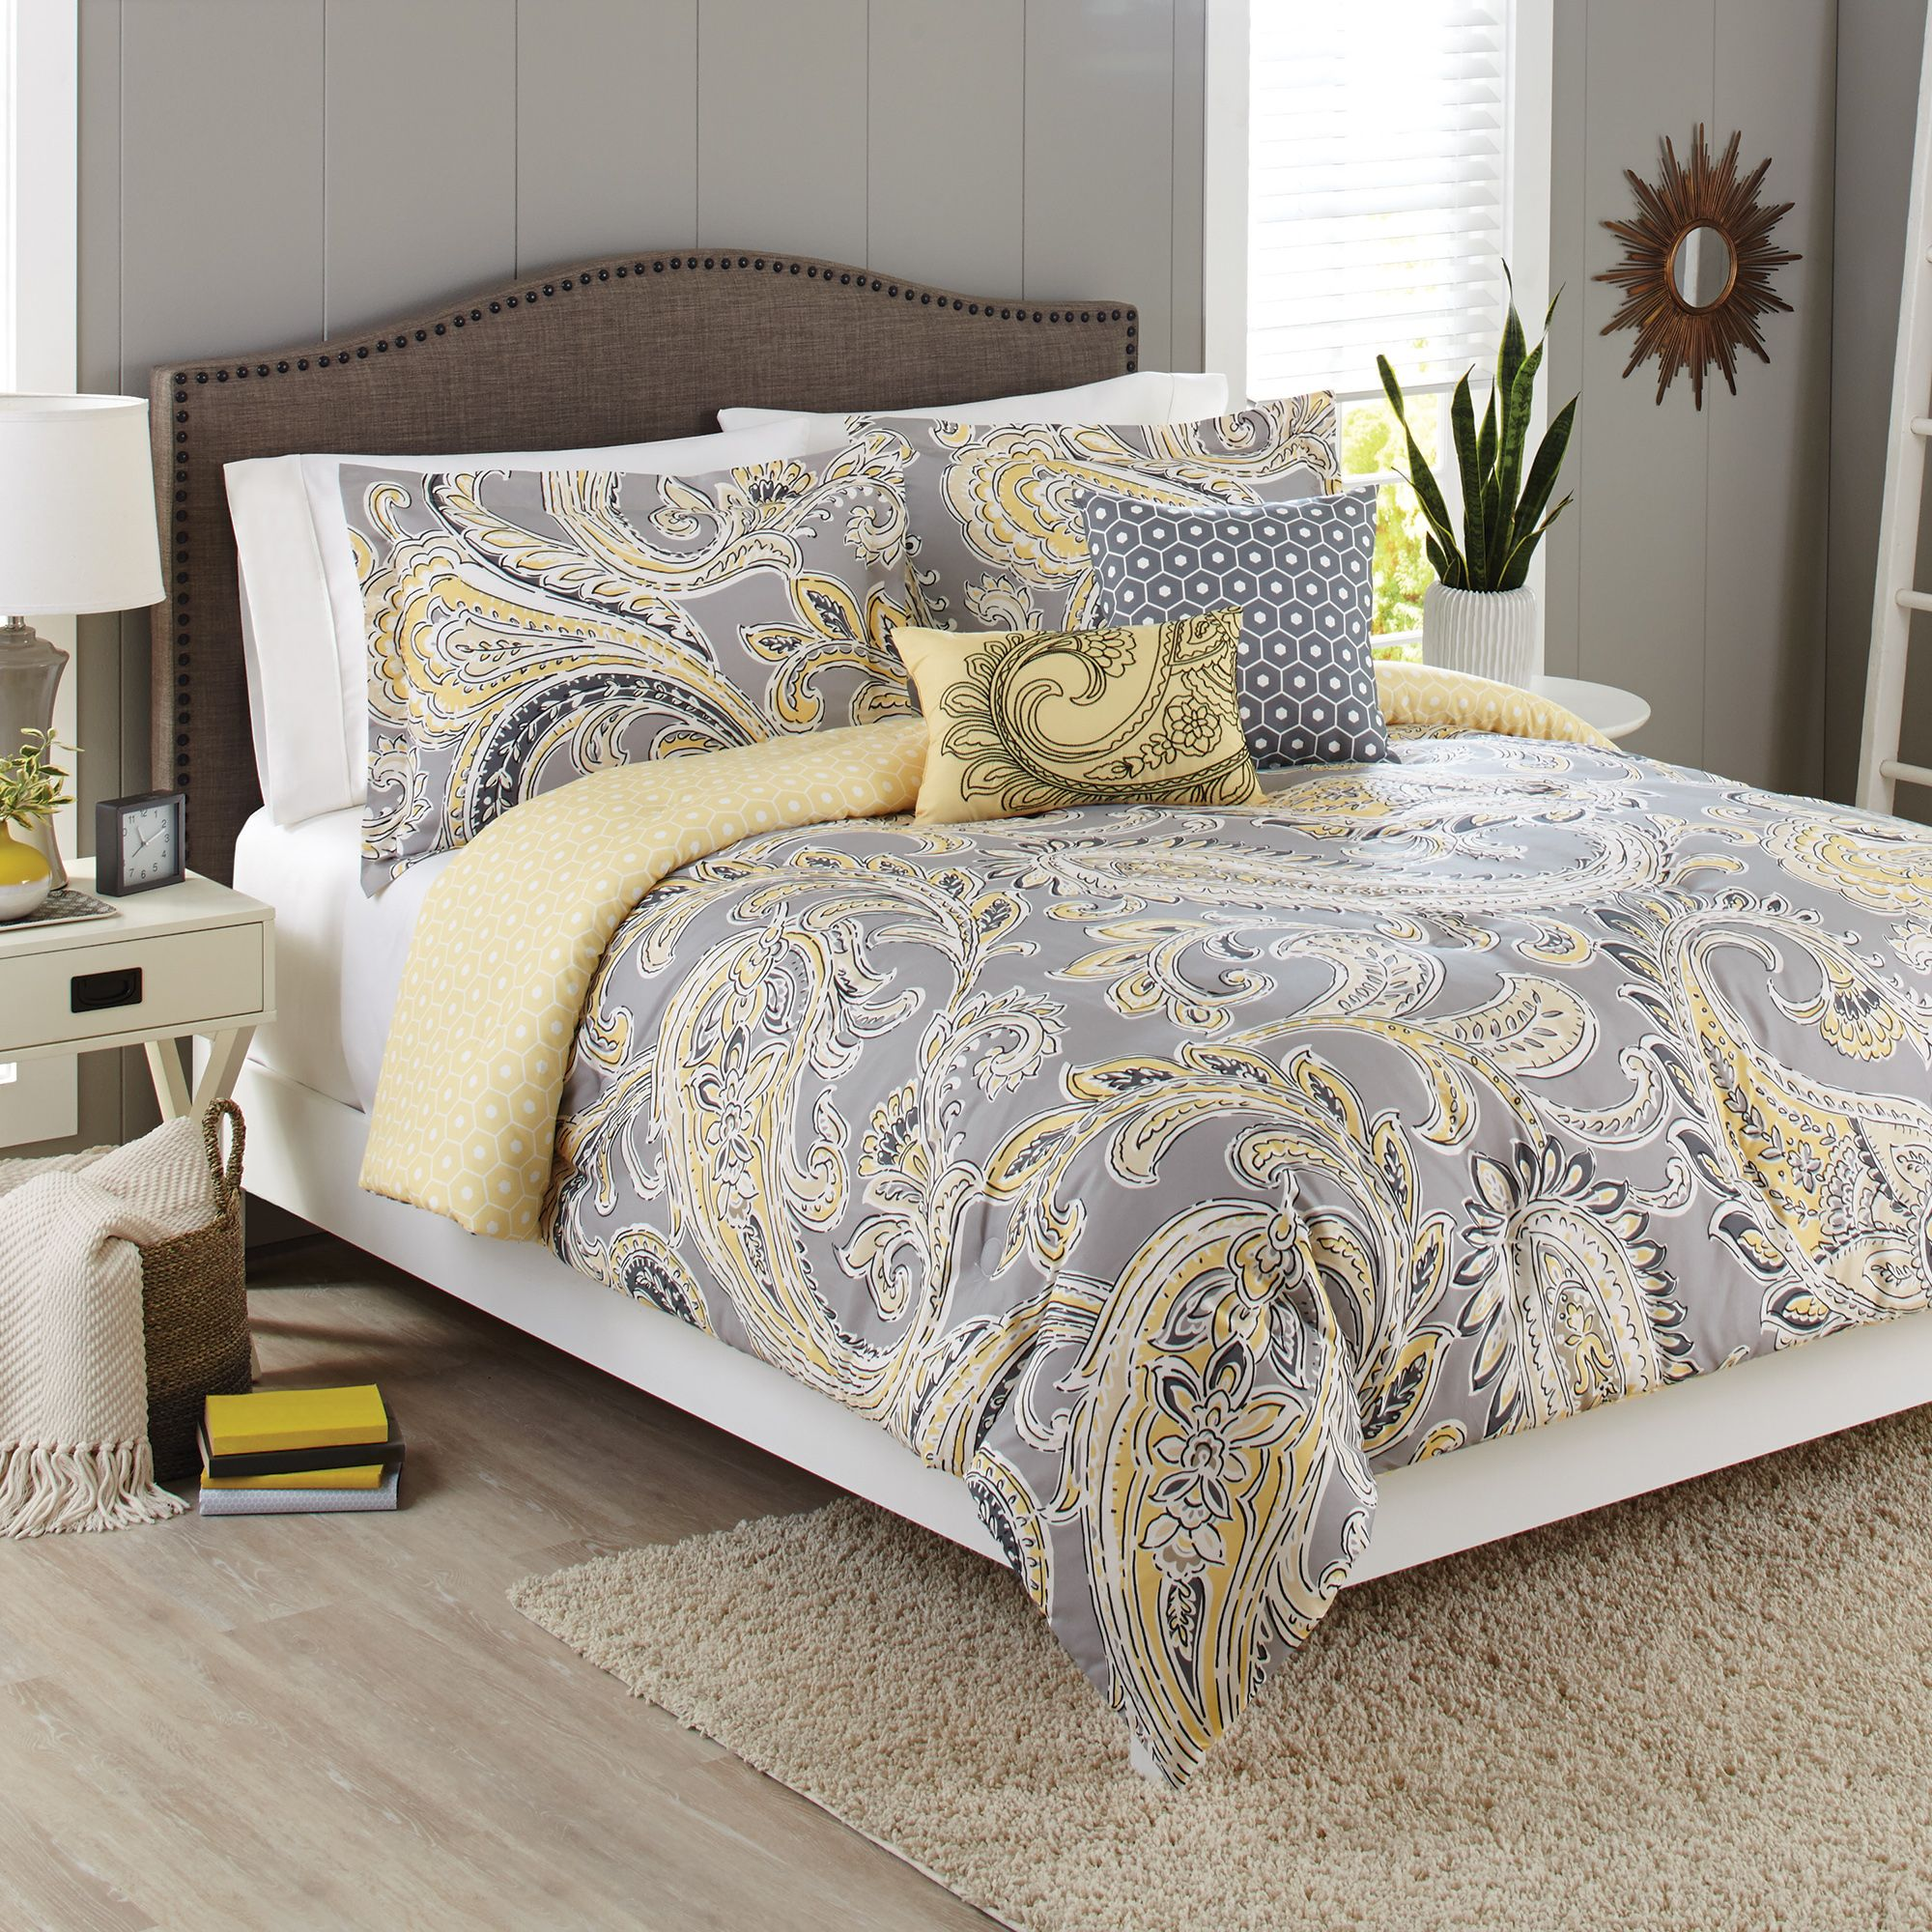 Home With Images Comforter Sets Yellow Bedding Grey Comforter Sets